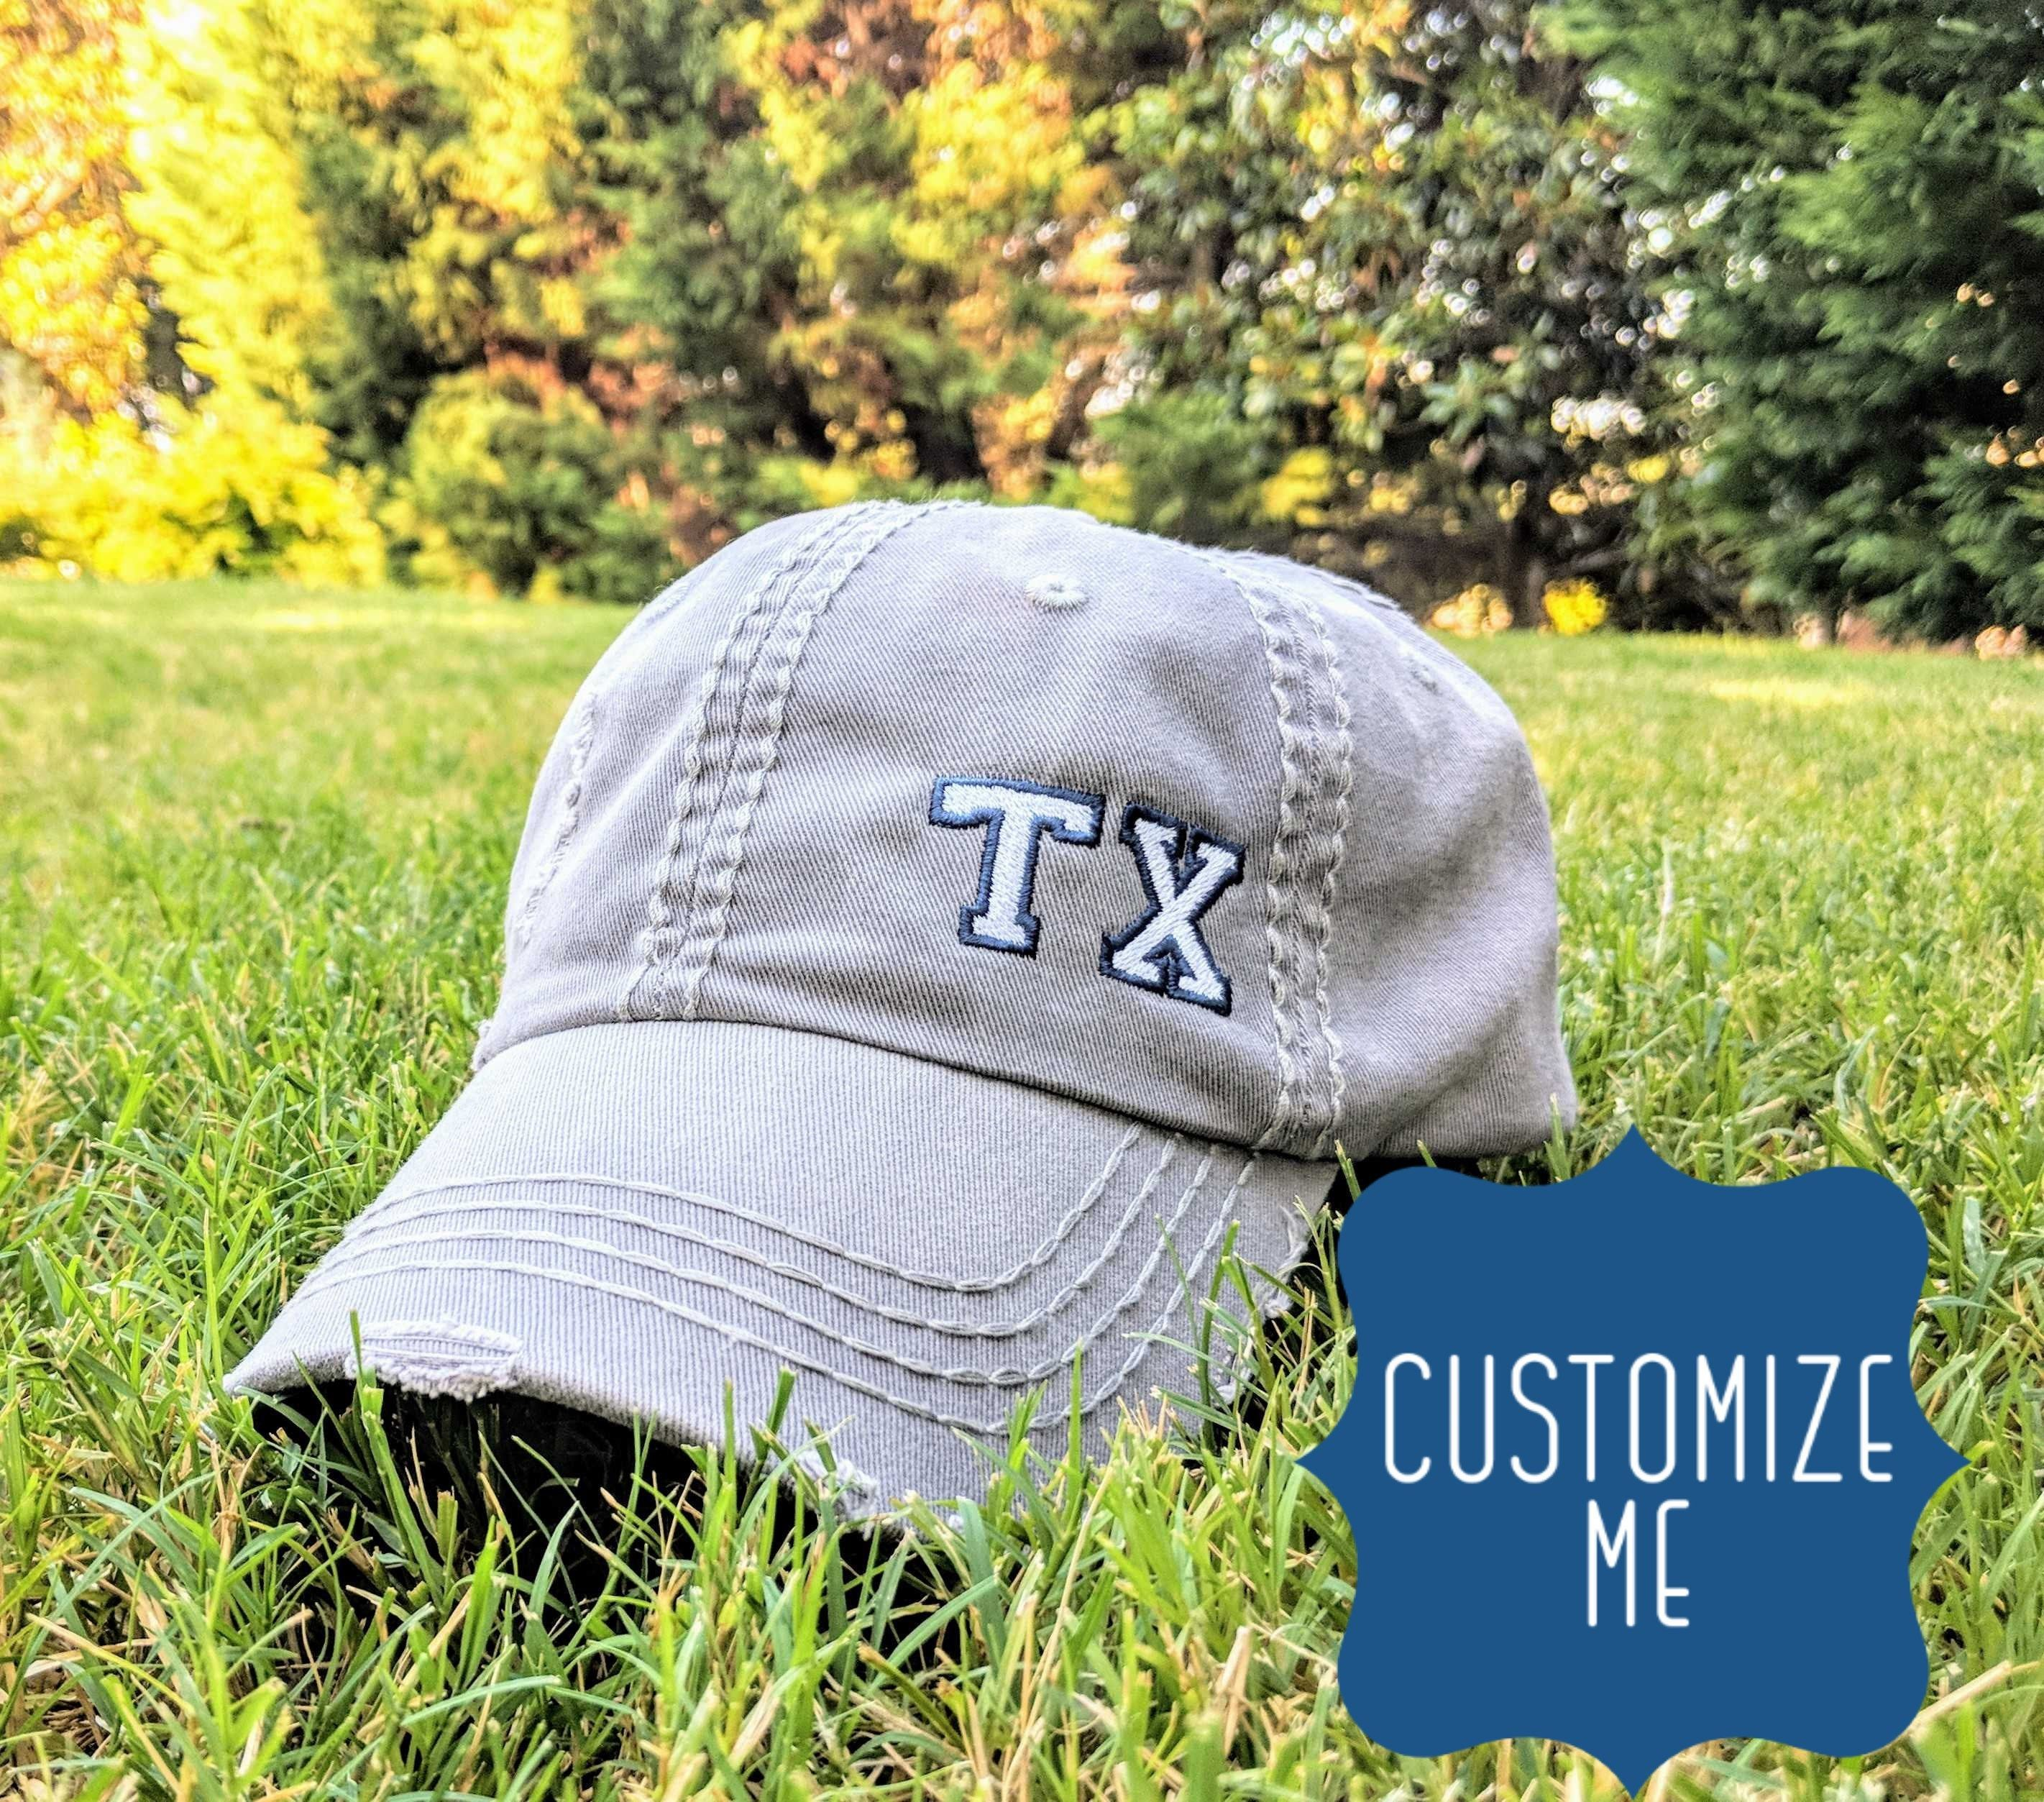 State or number, state abbreviation hat, abbreviation hat